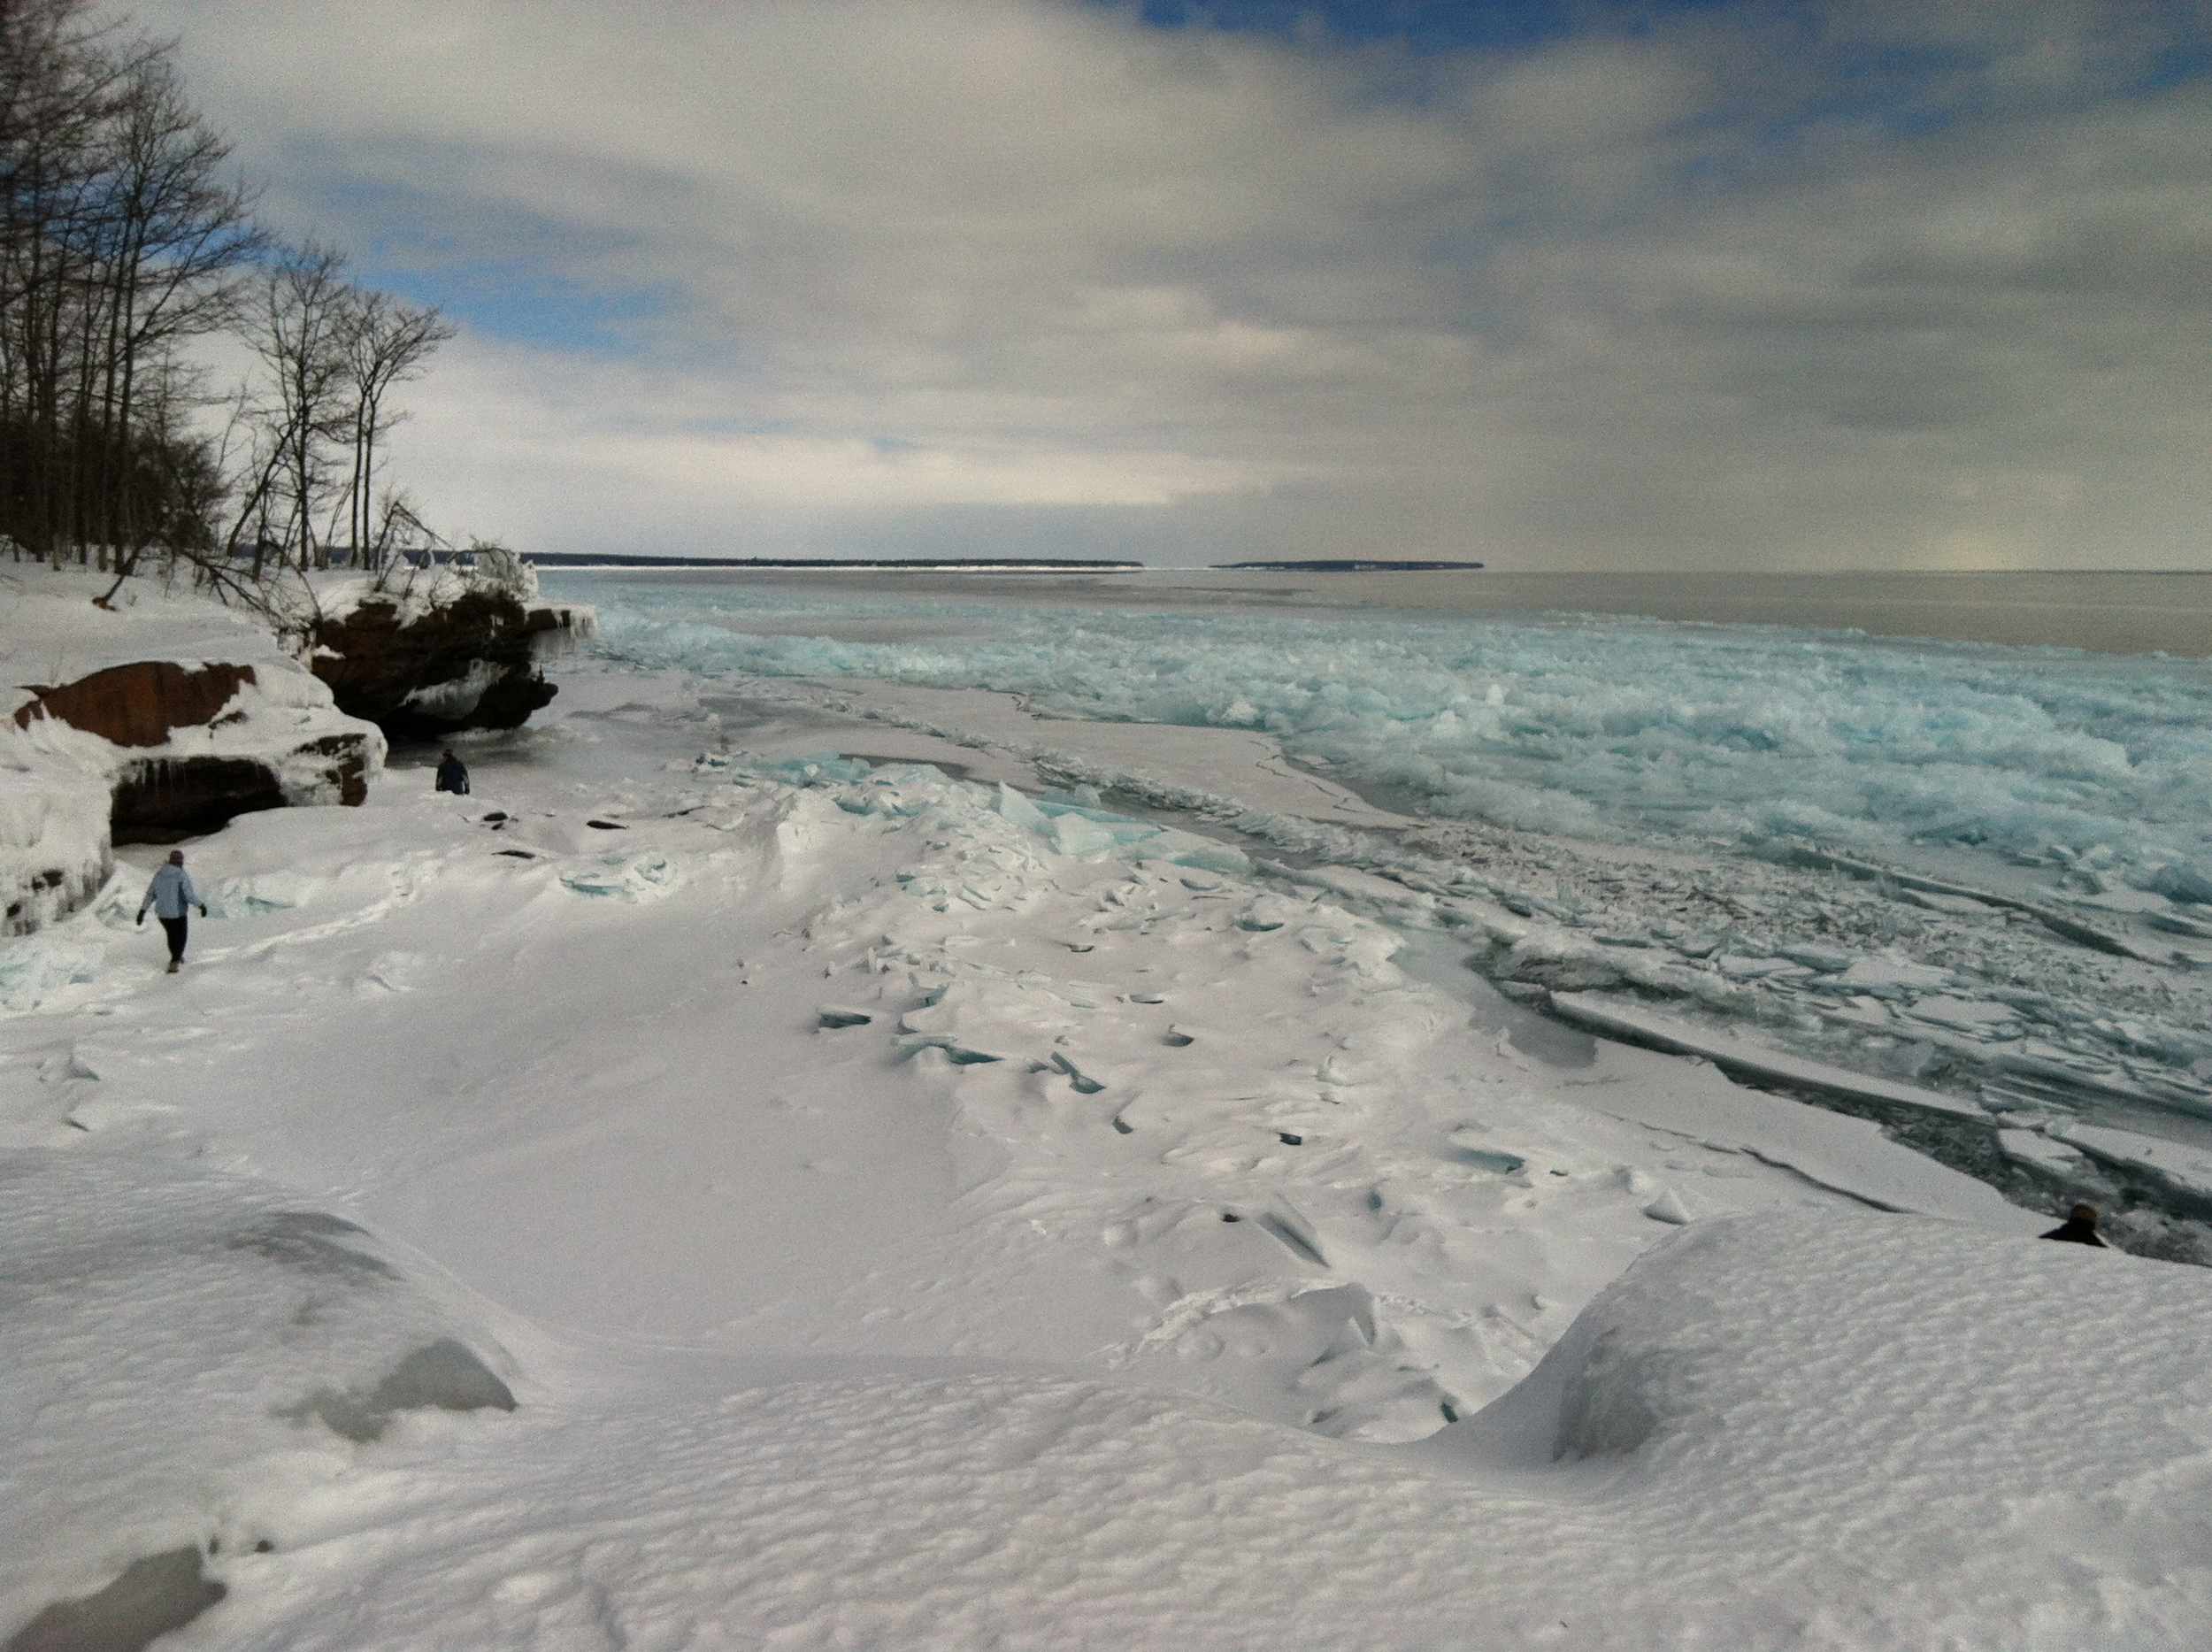 This past winter also brought spectacular Blue Ice off the point at Big Bay State Park.